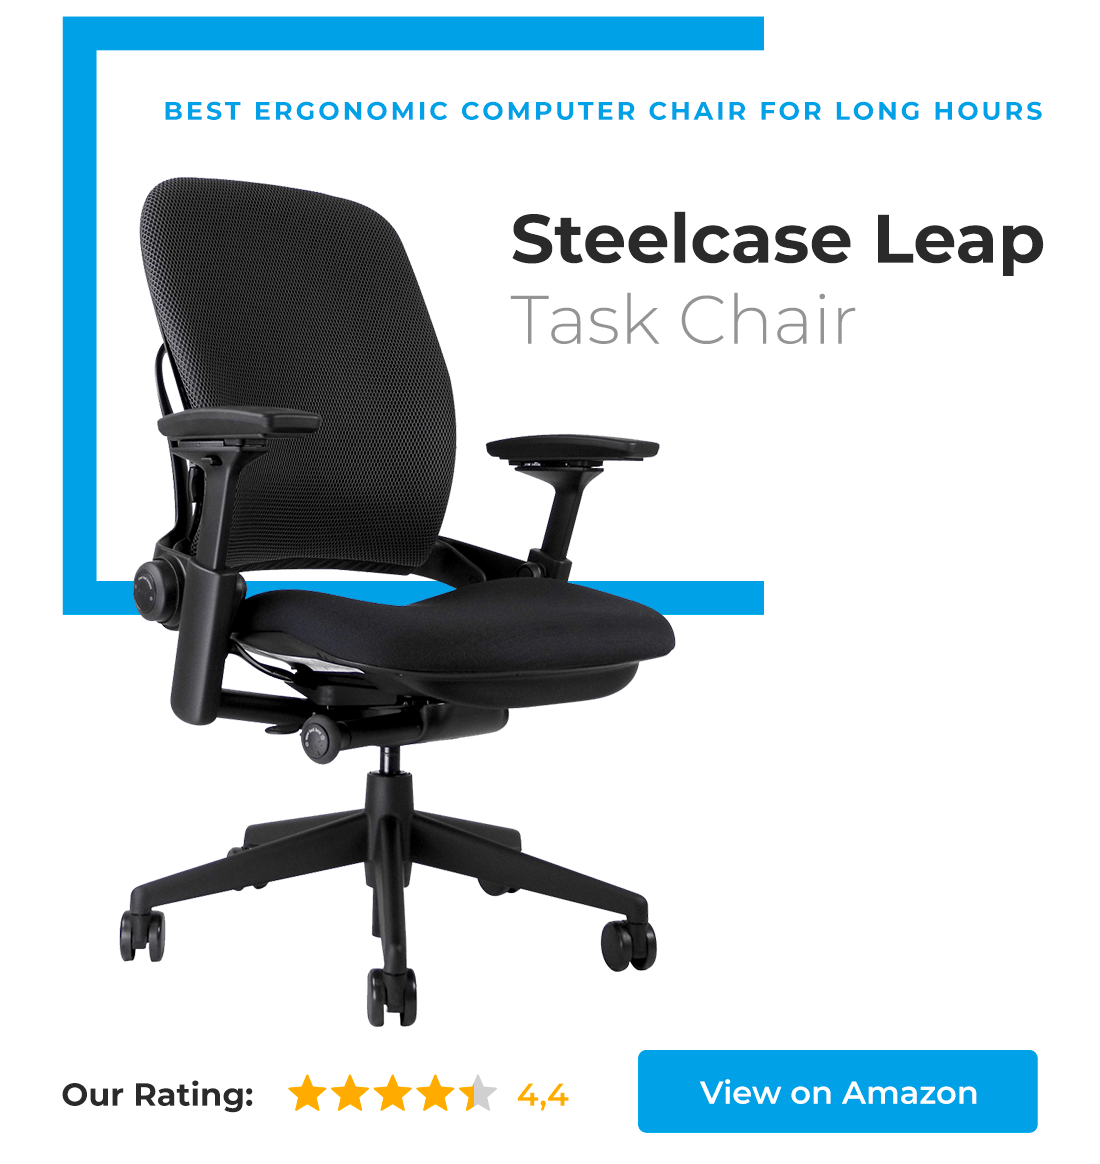 Steelcase Leap is best ergonomic computer chair for long hours